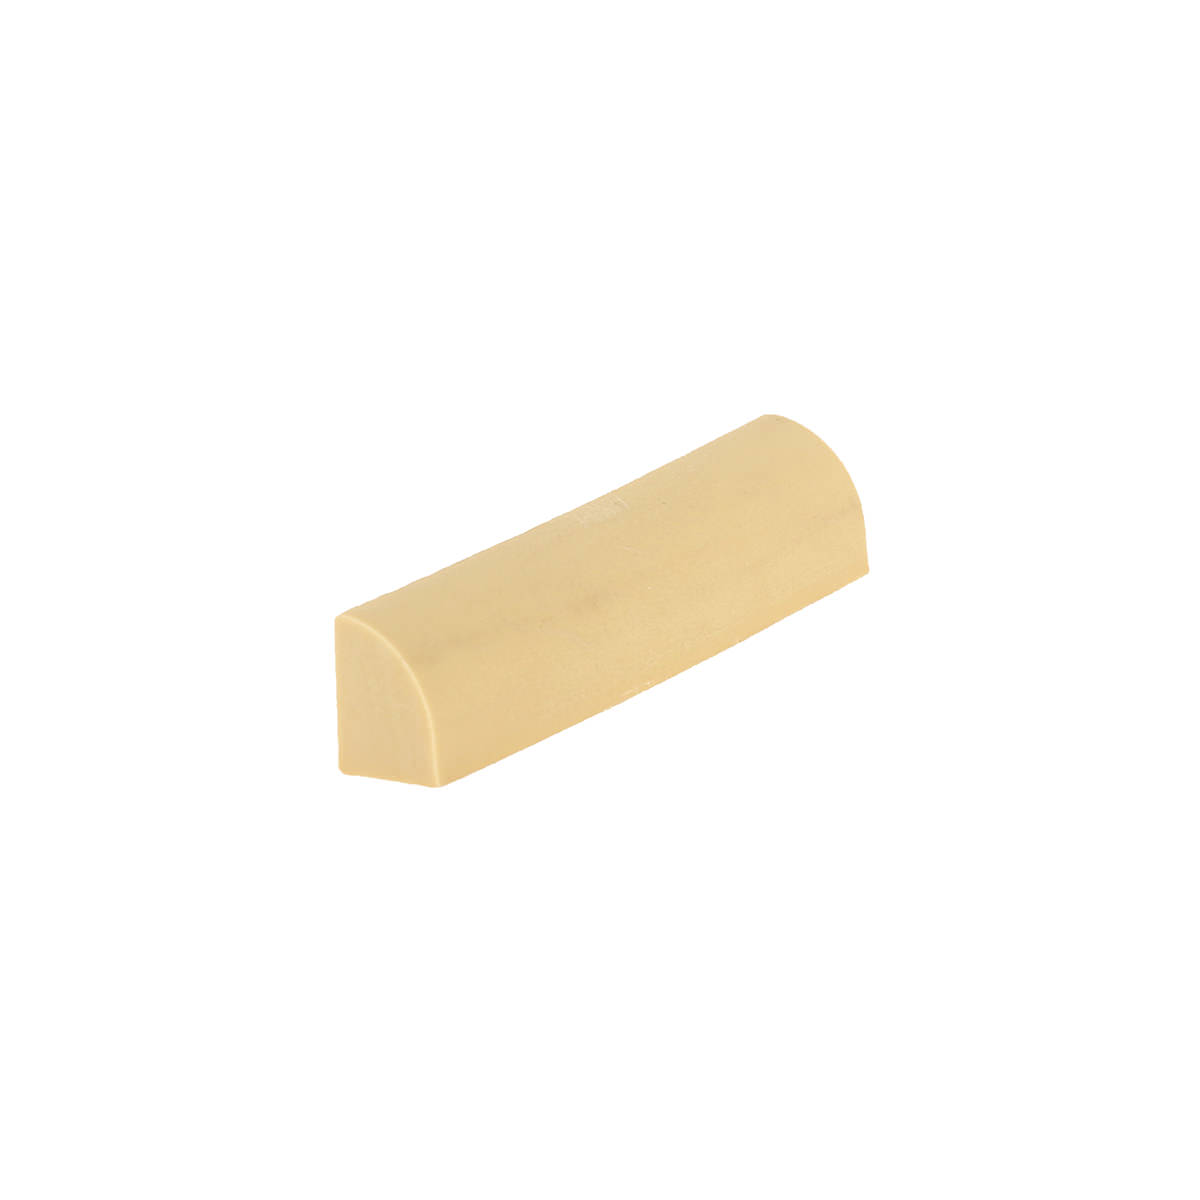 1 2 Quot X 3 4 Quot Poplar Flex Trim Shoe Moulding B001 Flex Pop